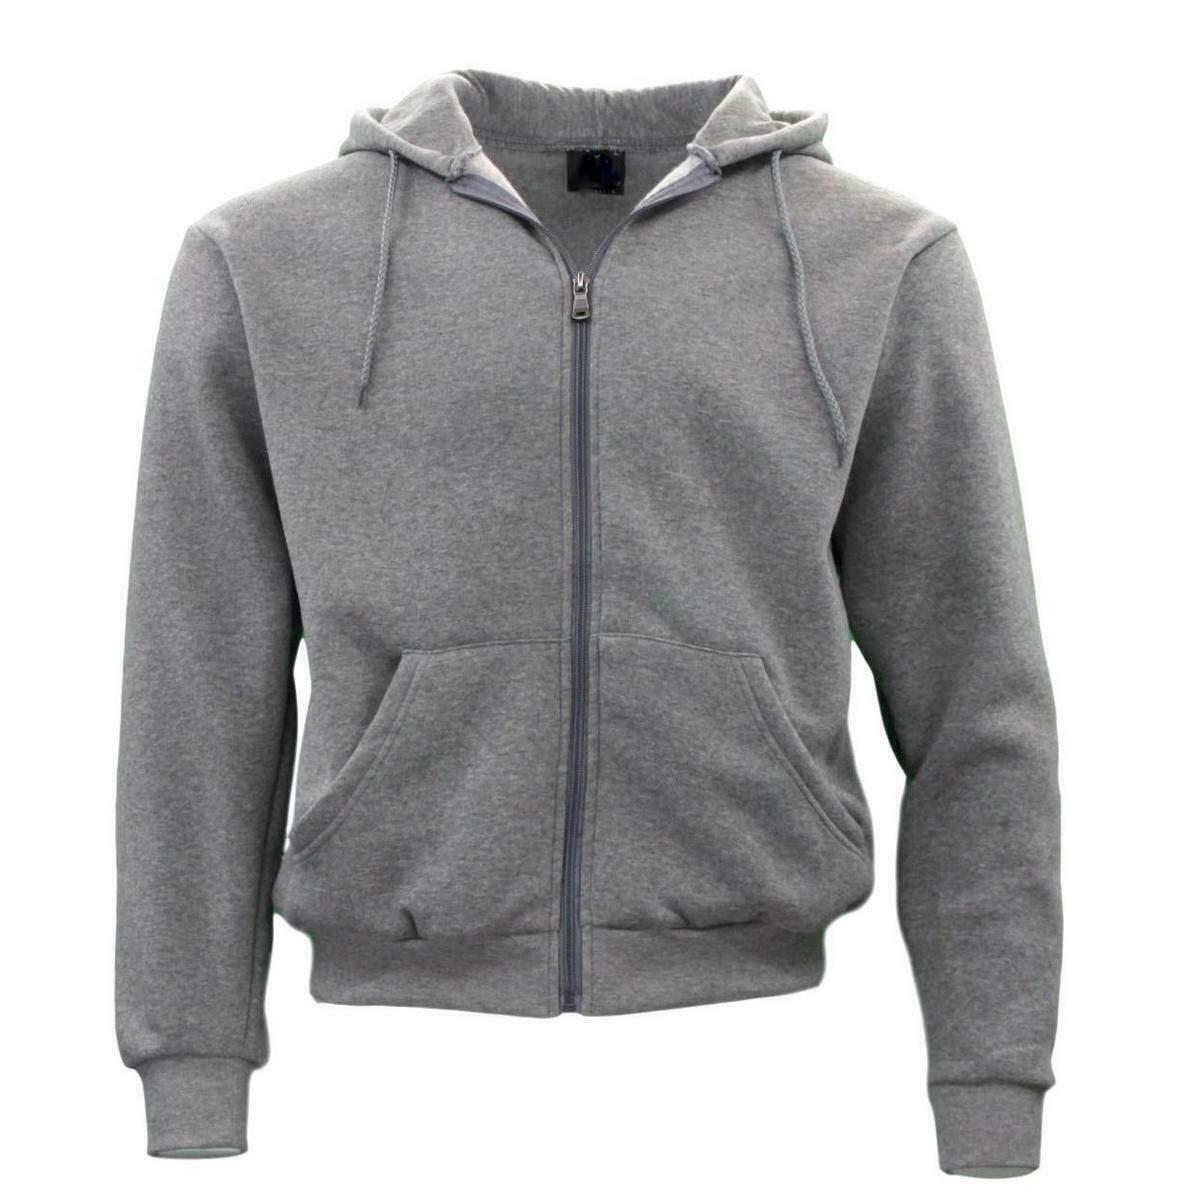 Adult-Unisex-Men-039-s-Zip-Up-Hoodie-w-Fleece-Hooded-Jacket-Jumper-Basic-Blank-Plain thumbnail 29